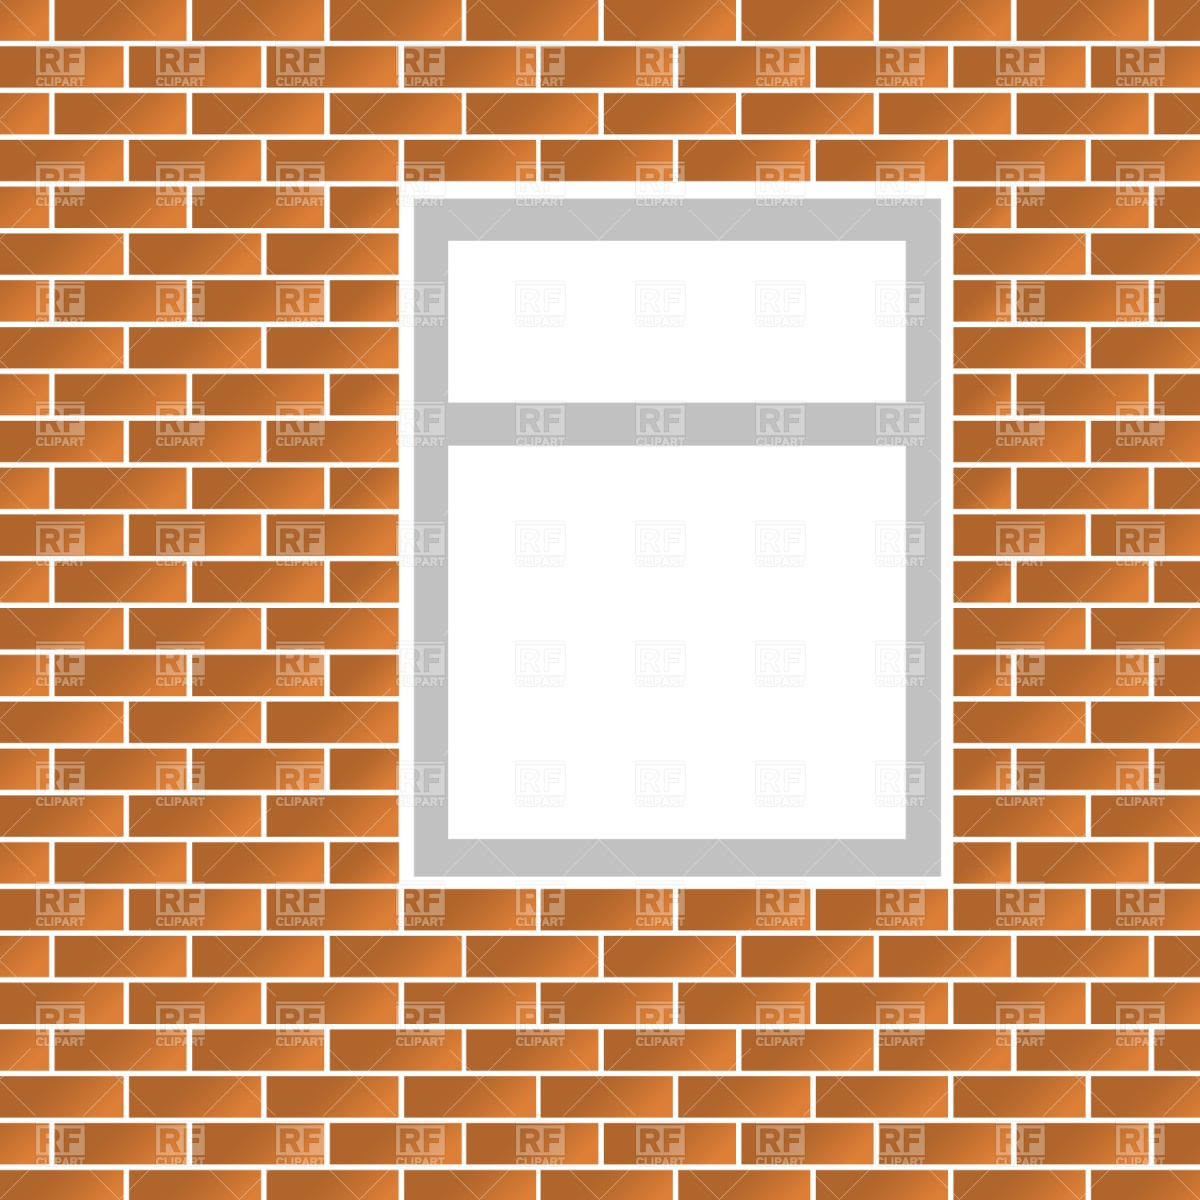 Brickwork Vector Image #1162.